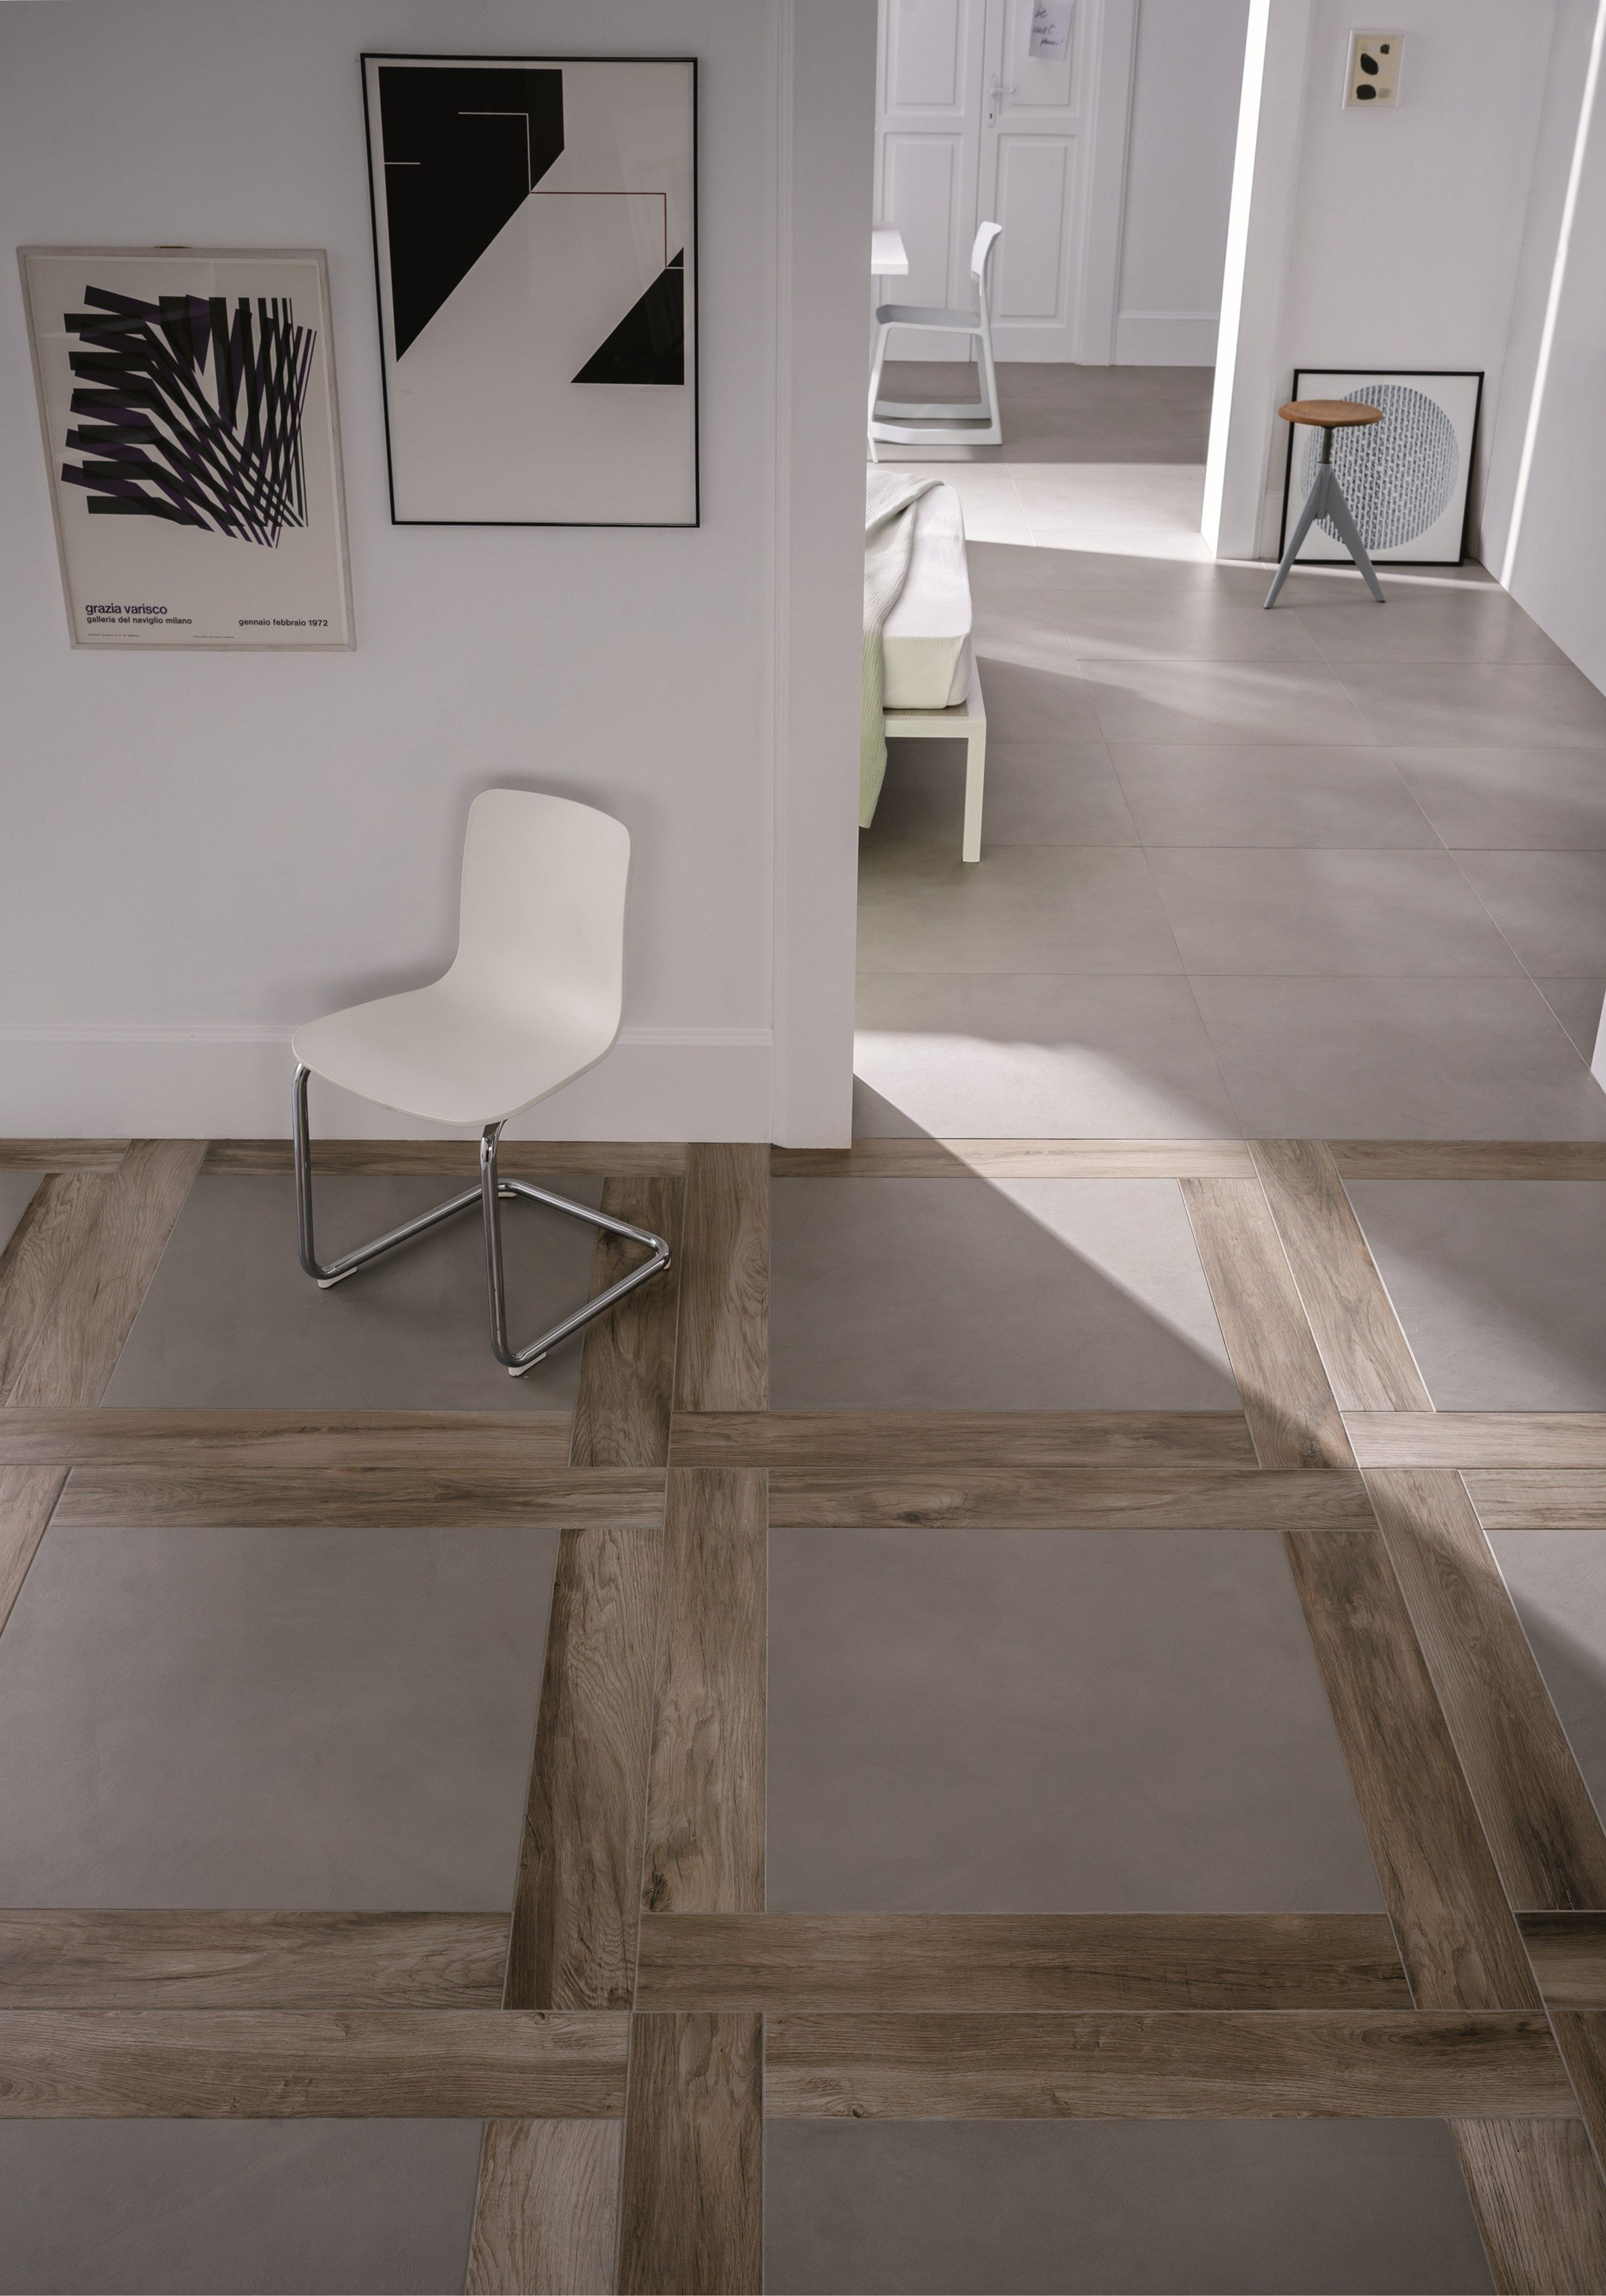 Pavimento Rivestimento In Gres Porcellanato Block By Marazzi Floor Patterns Tile Design